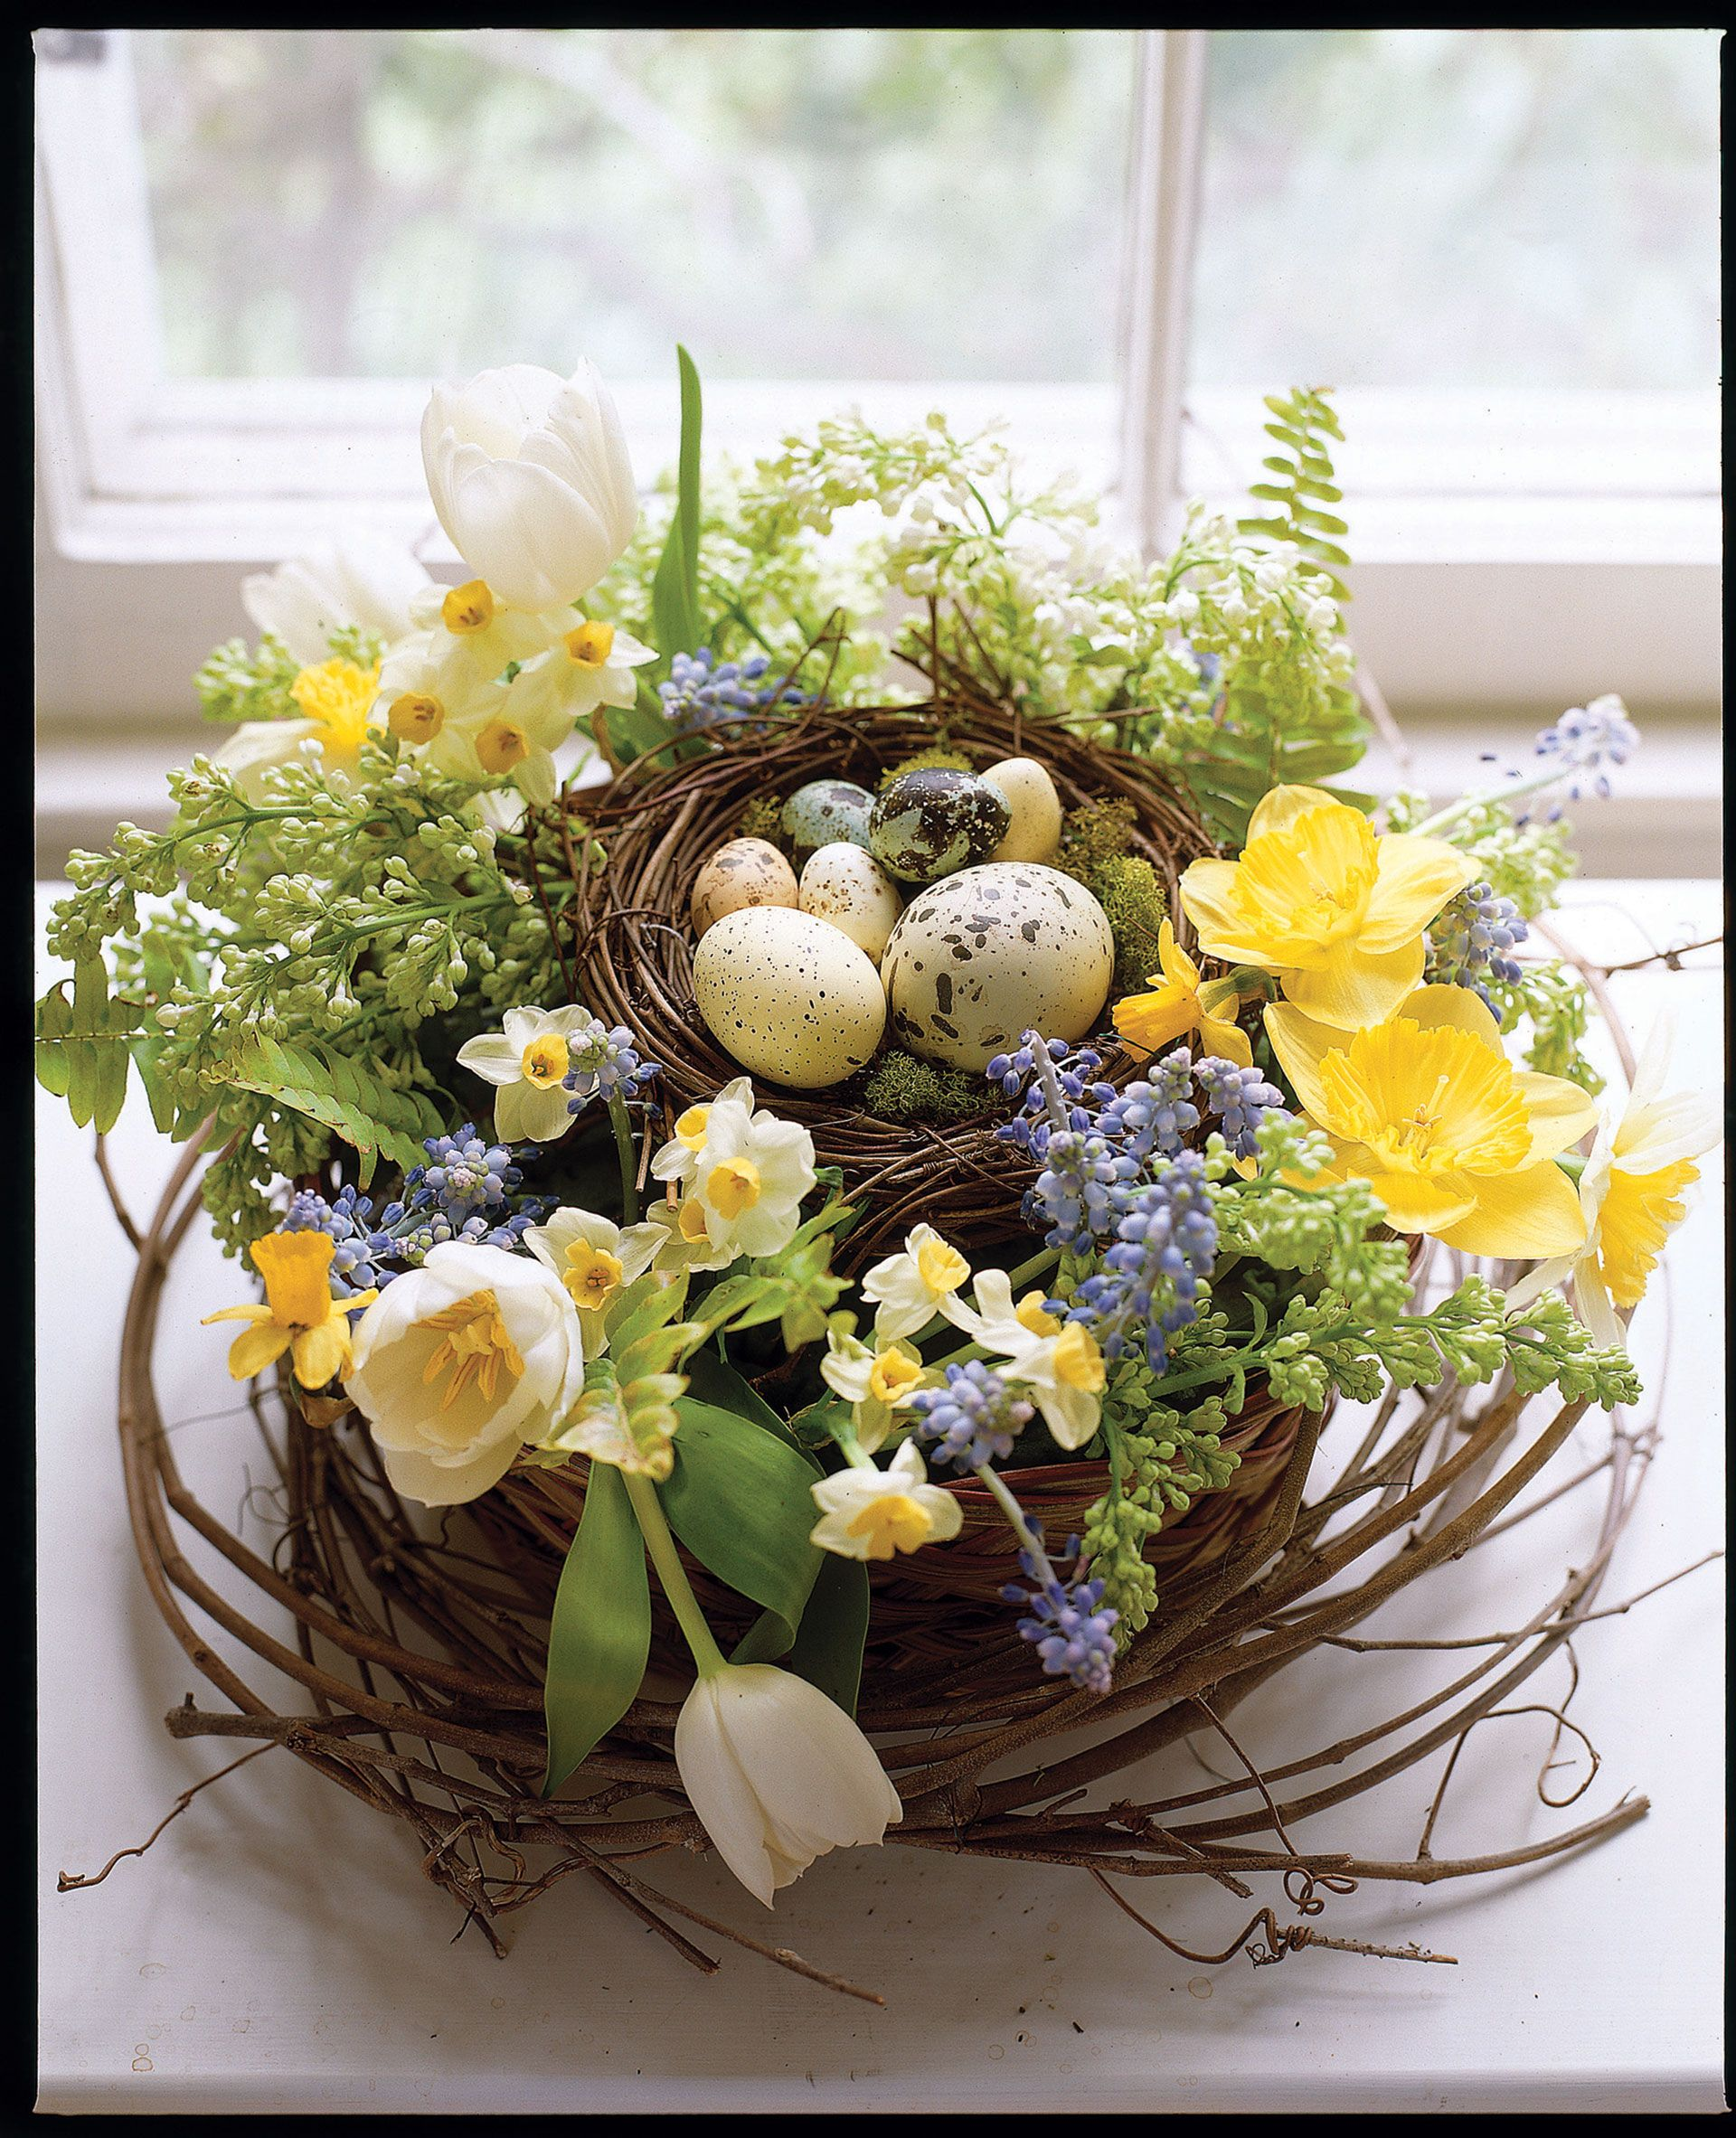 Easy And Creative Easter Egg Ideas That Anyone Can Diy Easter Flower Arrangements Easter Egg Decorating Easter Arrangement